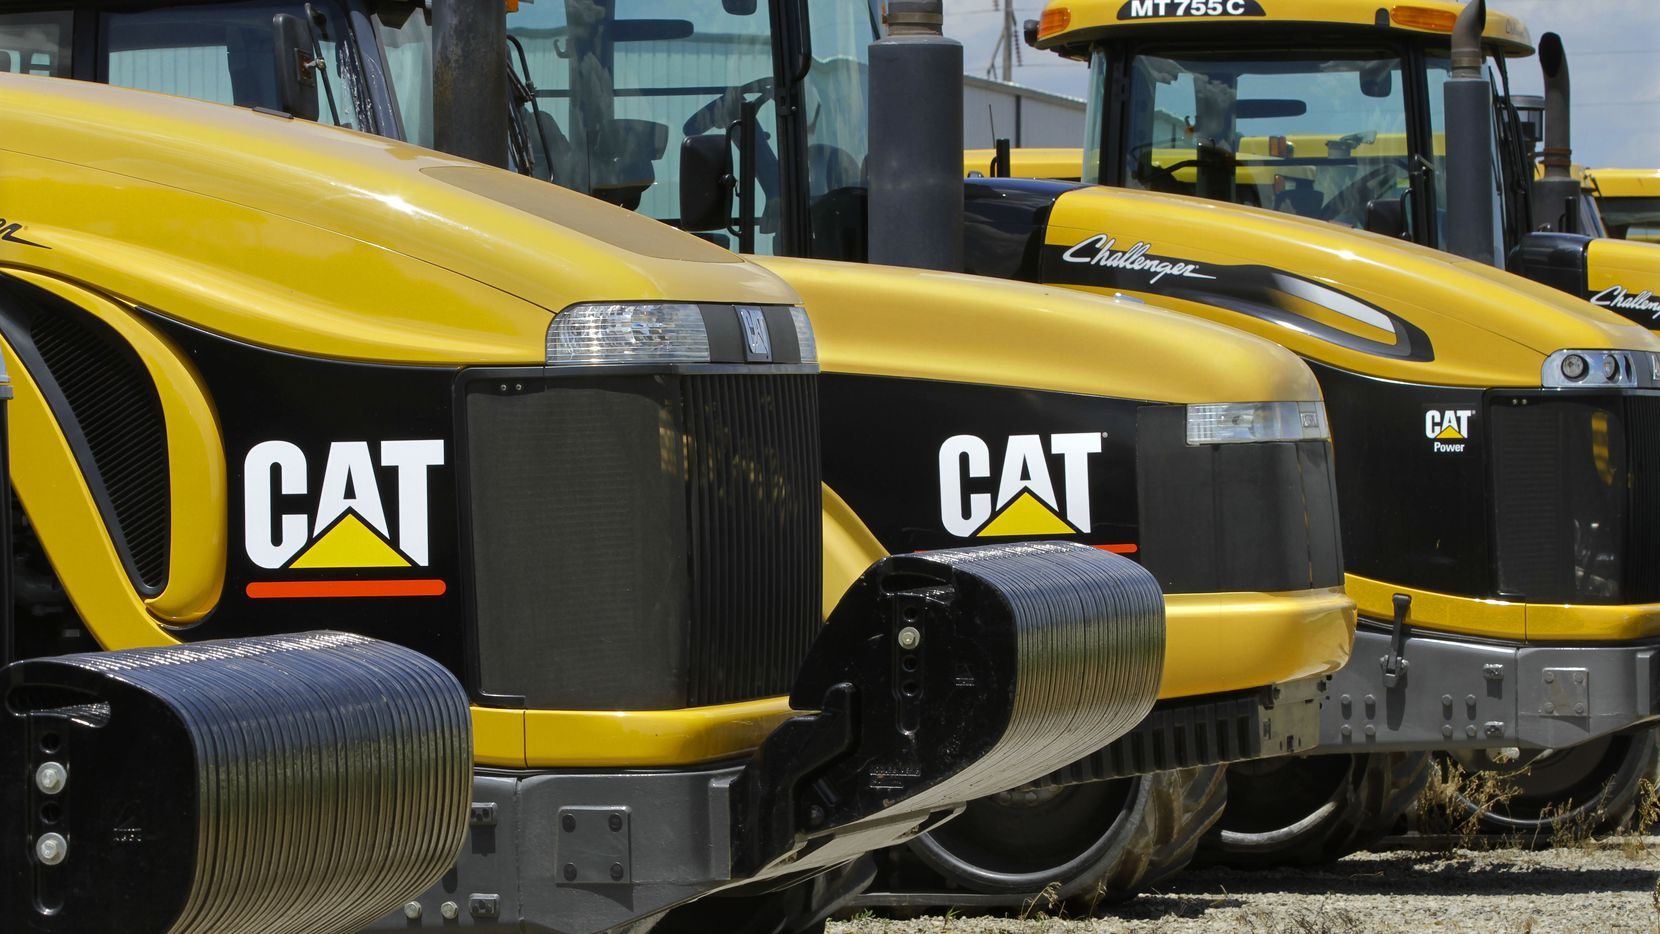 FILE - In this Wednesday, June 20, 2012, file photo, shows Caterpillar logos on earth moving tractors and equipment in Clinton, Ill. Caterpillar laid off 120 workers in Victoria this month. Caterpillar Inc. is the worlds largest construction and mining equipment maker, so its results are watched closely as a sign of where the broader economy is headed. (AP Photo/Seth Perlman)